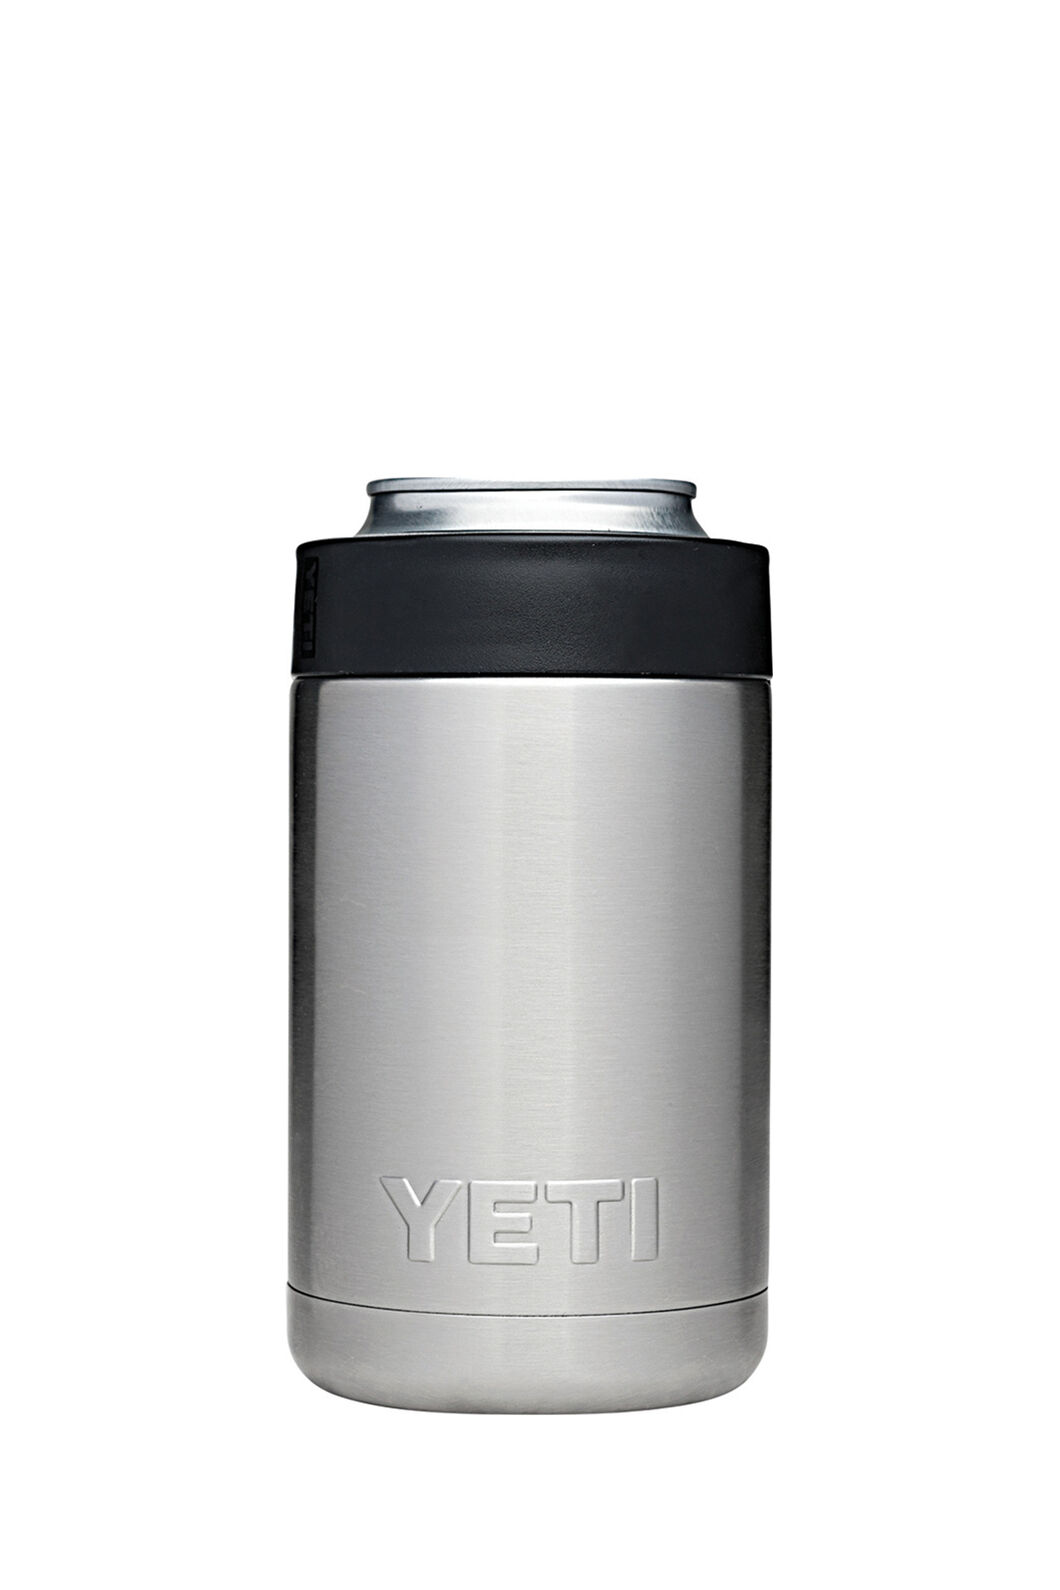 Yeti Rambler Colster Drink Holder, None, hi-res